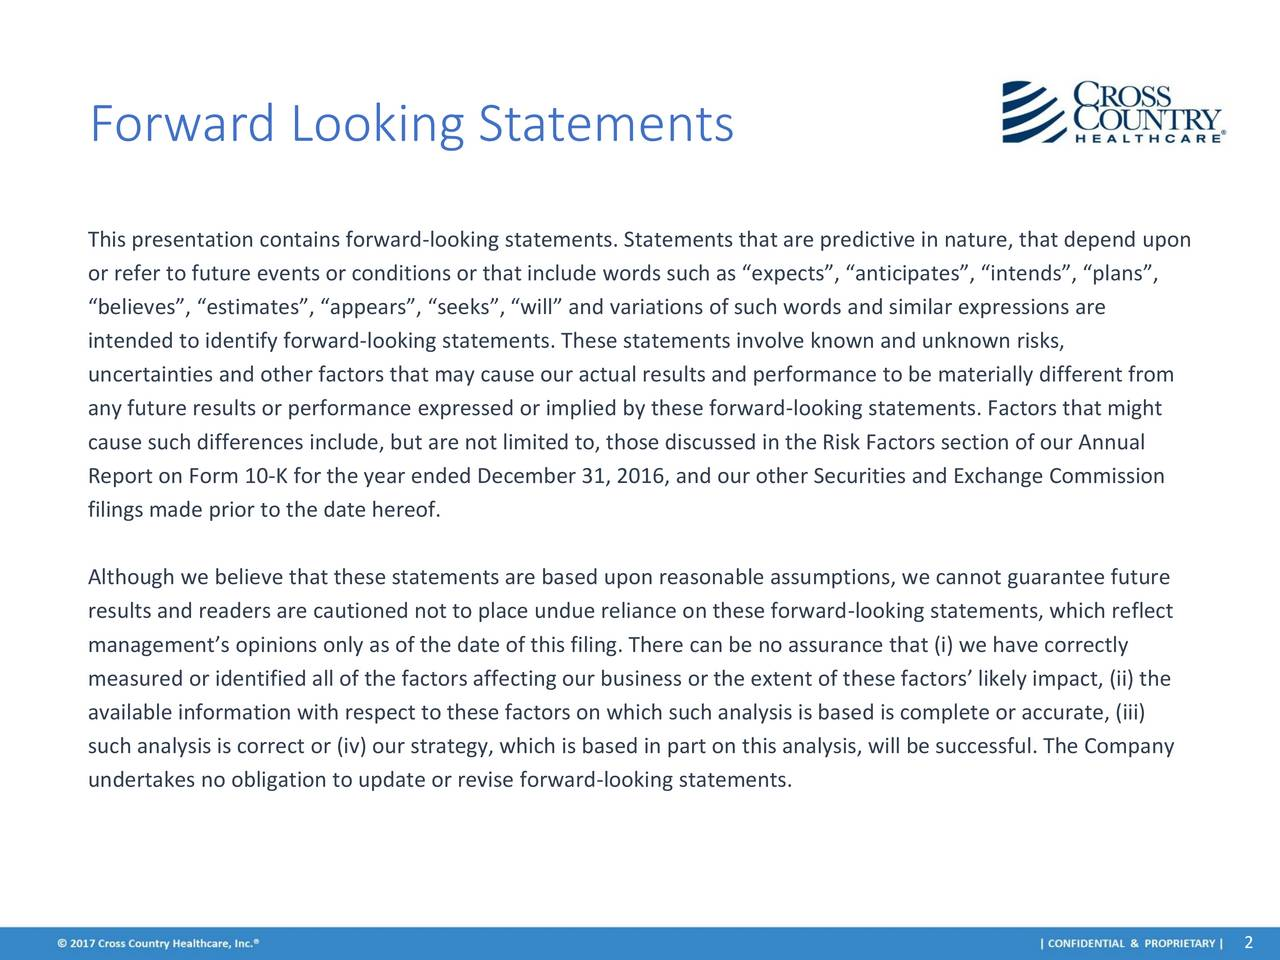 This presentation contains forward-looking statements. Statements that are predictive in nature, that depend upon or refer to future events or conditions or that include words such as expects, anticipates, intends, plans, believes, estimates, appears, seeks, will and variations of such words and similar expressions are intended to identify forward-looking statements. These statements involve known and unknown risks, uncertainties and other factors that may cause our actual results and performance to be materially different from any future results or performance expressed or implied by these forward-looking statements. Factors that might cause such differences include, but are not limited to, those discussed in the Risk Factors section of our Annual Report on Form 10-K for the year ended December 31, 2016, and our other Securities and Exchange Commission filings made prior to the date hereof. Although we believe that these statements are based upon reasonable assumptions, we cannot guarantee future results and readers are cautioned not to place undue reliance on these forward-looking statements, which reflect managements opinions only as of the date of this filing. There can be no assurance that (i) we have correctly measured or identified all of the factors affecting our business or the extent of these factors likely impact, (ii) the available information with respect to these factors on which such analysis is based is complete or accurate, (iii) such analysis is correct or (iv) our strategy, which is based in part on this analysis, will be successful. The Company undertakes no obligation to update or revise forward-looking statements.